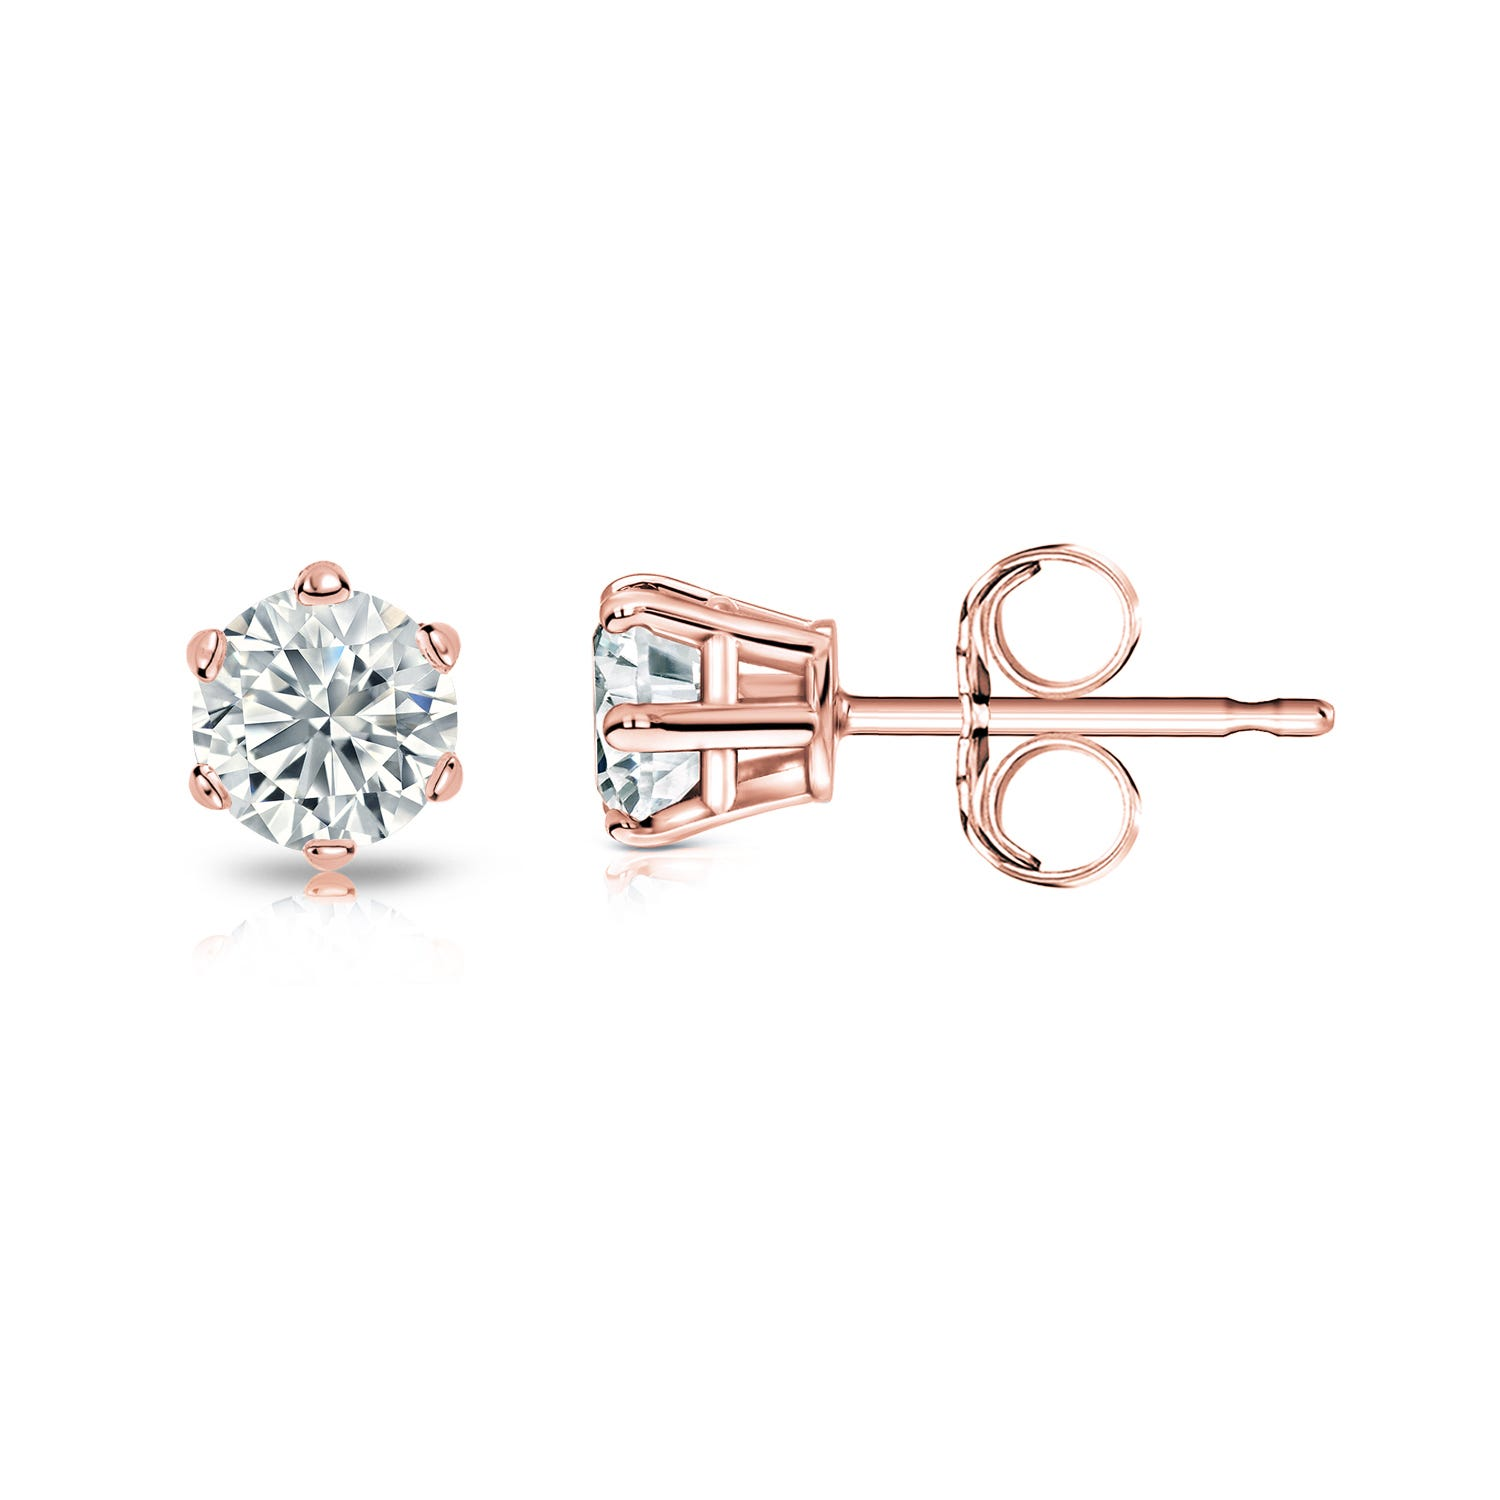 Round Diamond 1/10ctw. (IJ-I2) Solitaire Stud 6-Prong Earrings in 14K Rose Gold